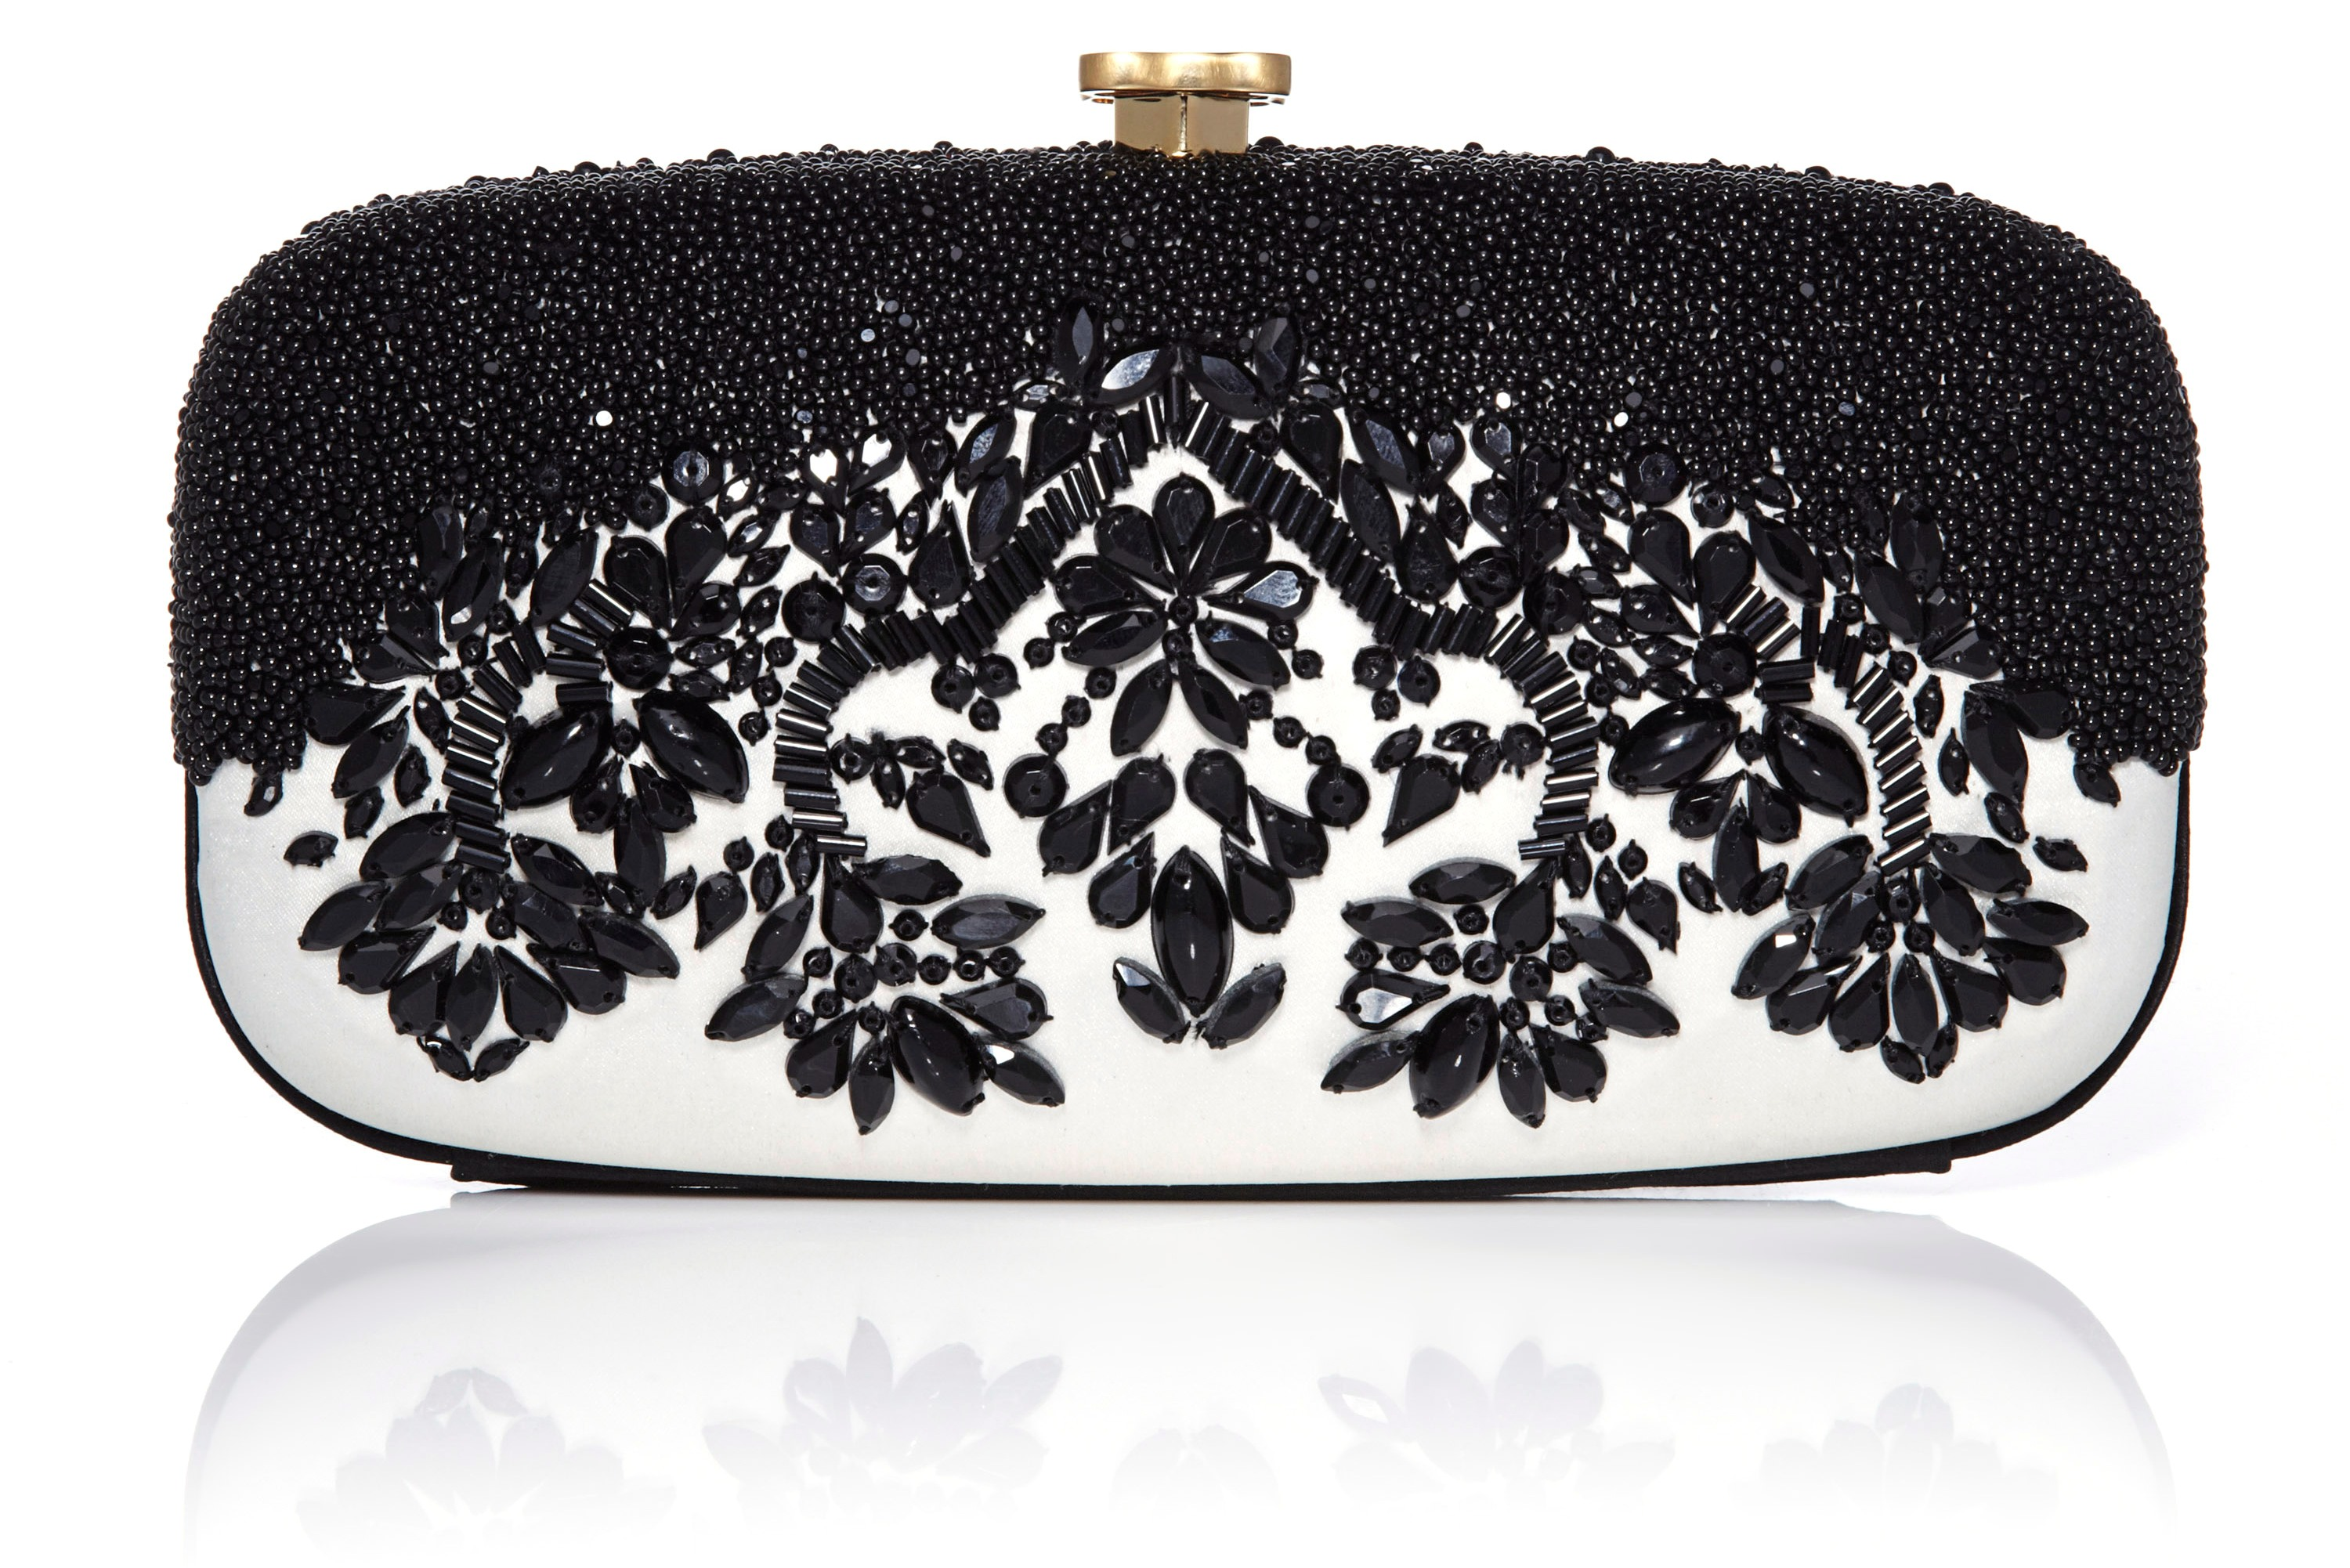 10-must-have-accessories-for-fallwinter-2013_02